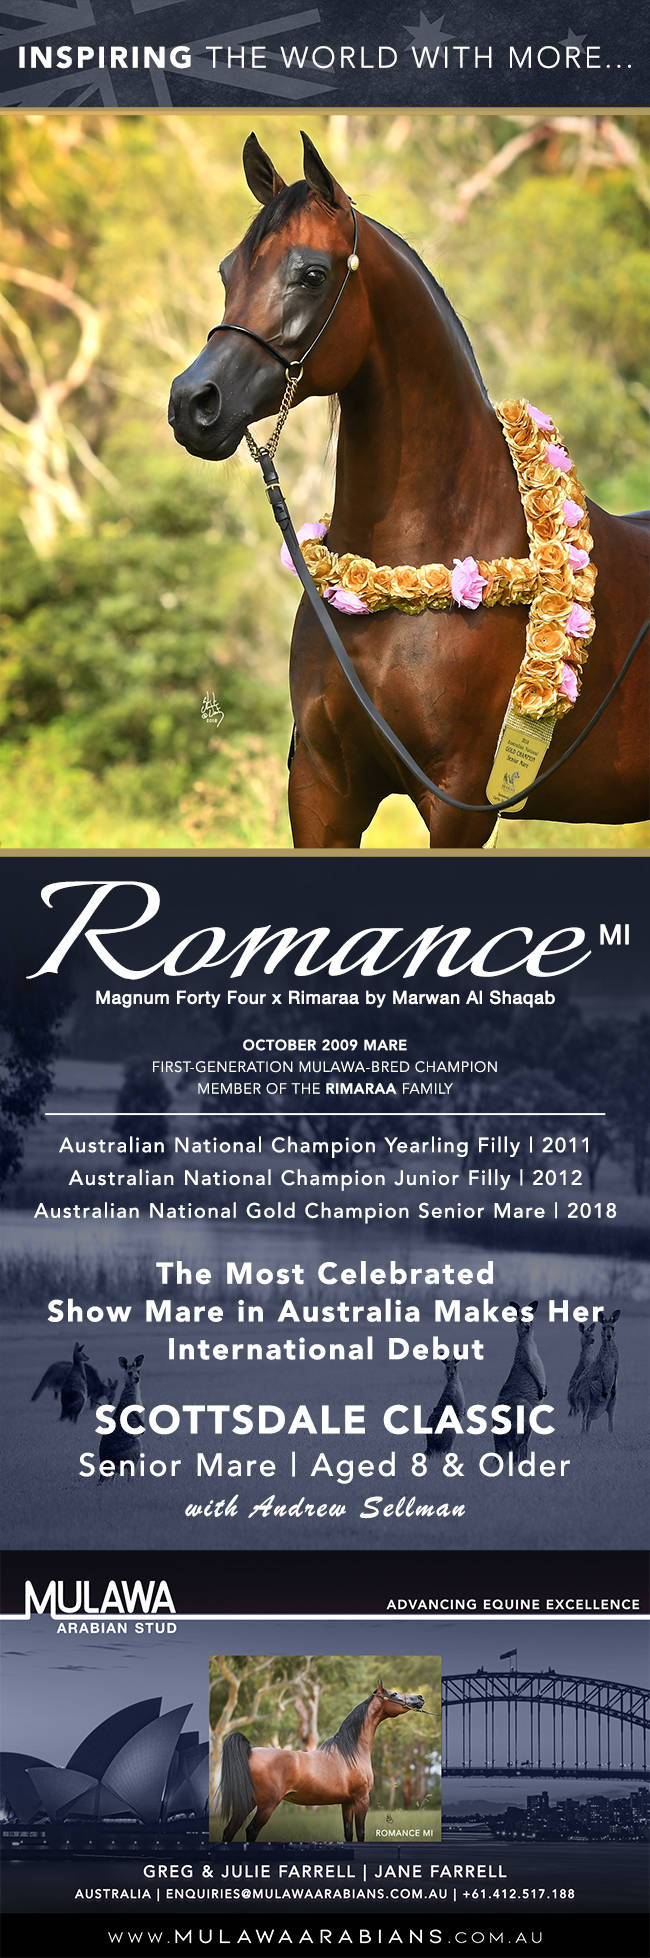 Arabian Aristocracy Three Time Australian National Champion Romance Mi Arabian Horses Stallions Farms Arabians Horses For Sale Arabian Horse Network